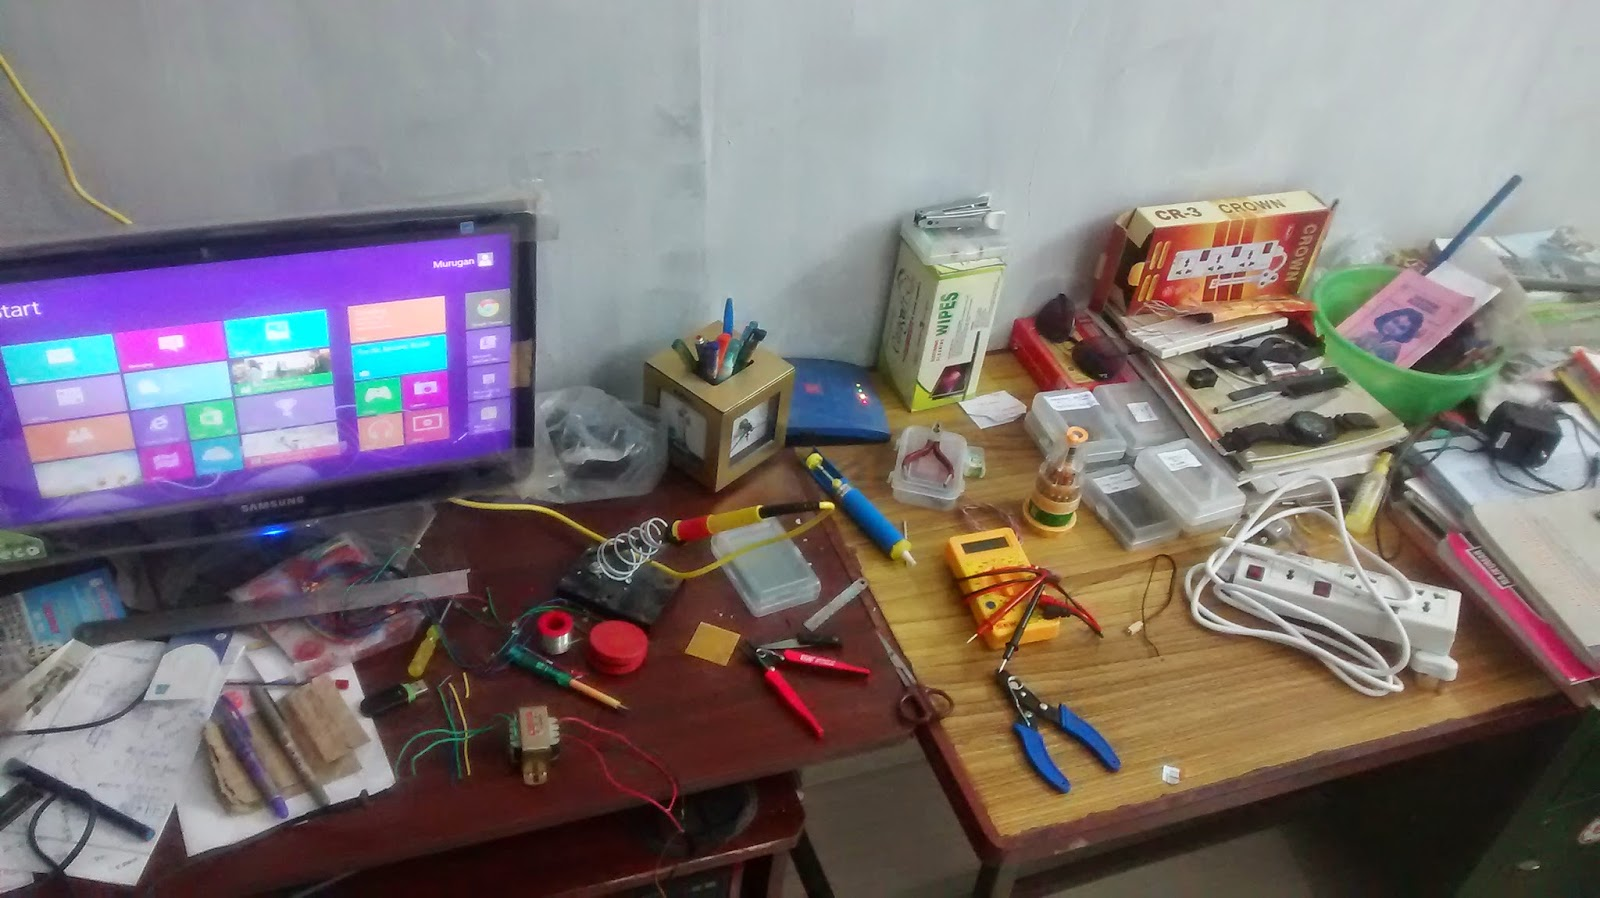 How To Set Up Your Own Electronics Lab At Home Voltmeter Using Arduino Electronicslab Every Electronic Hobbyists Have A Dream Of Setting His Learn Explore Widen The Knowledge And Course Fun With